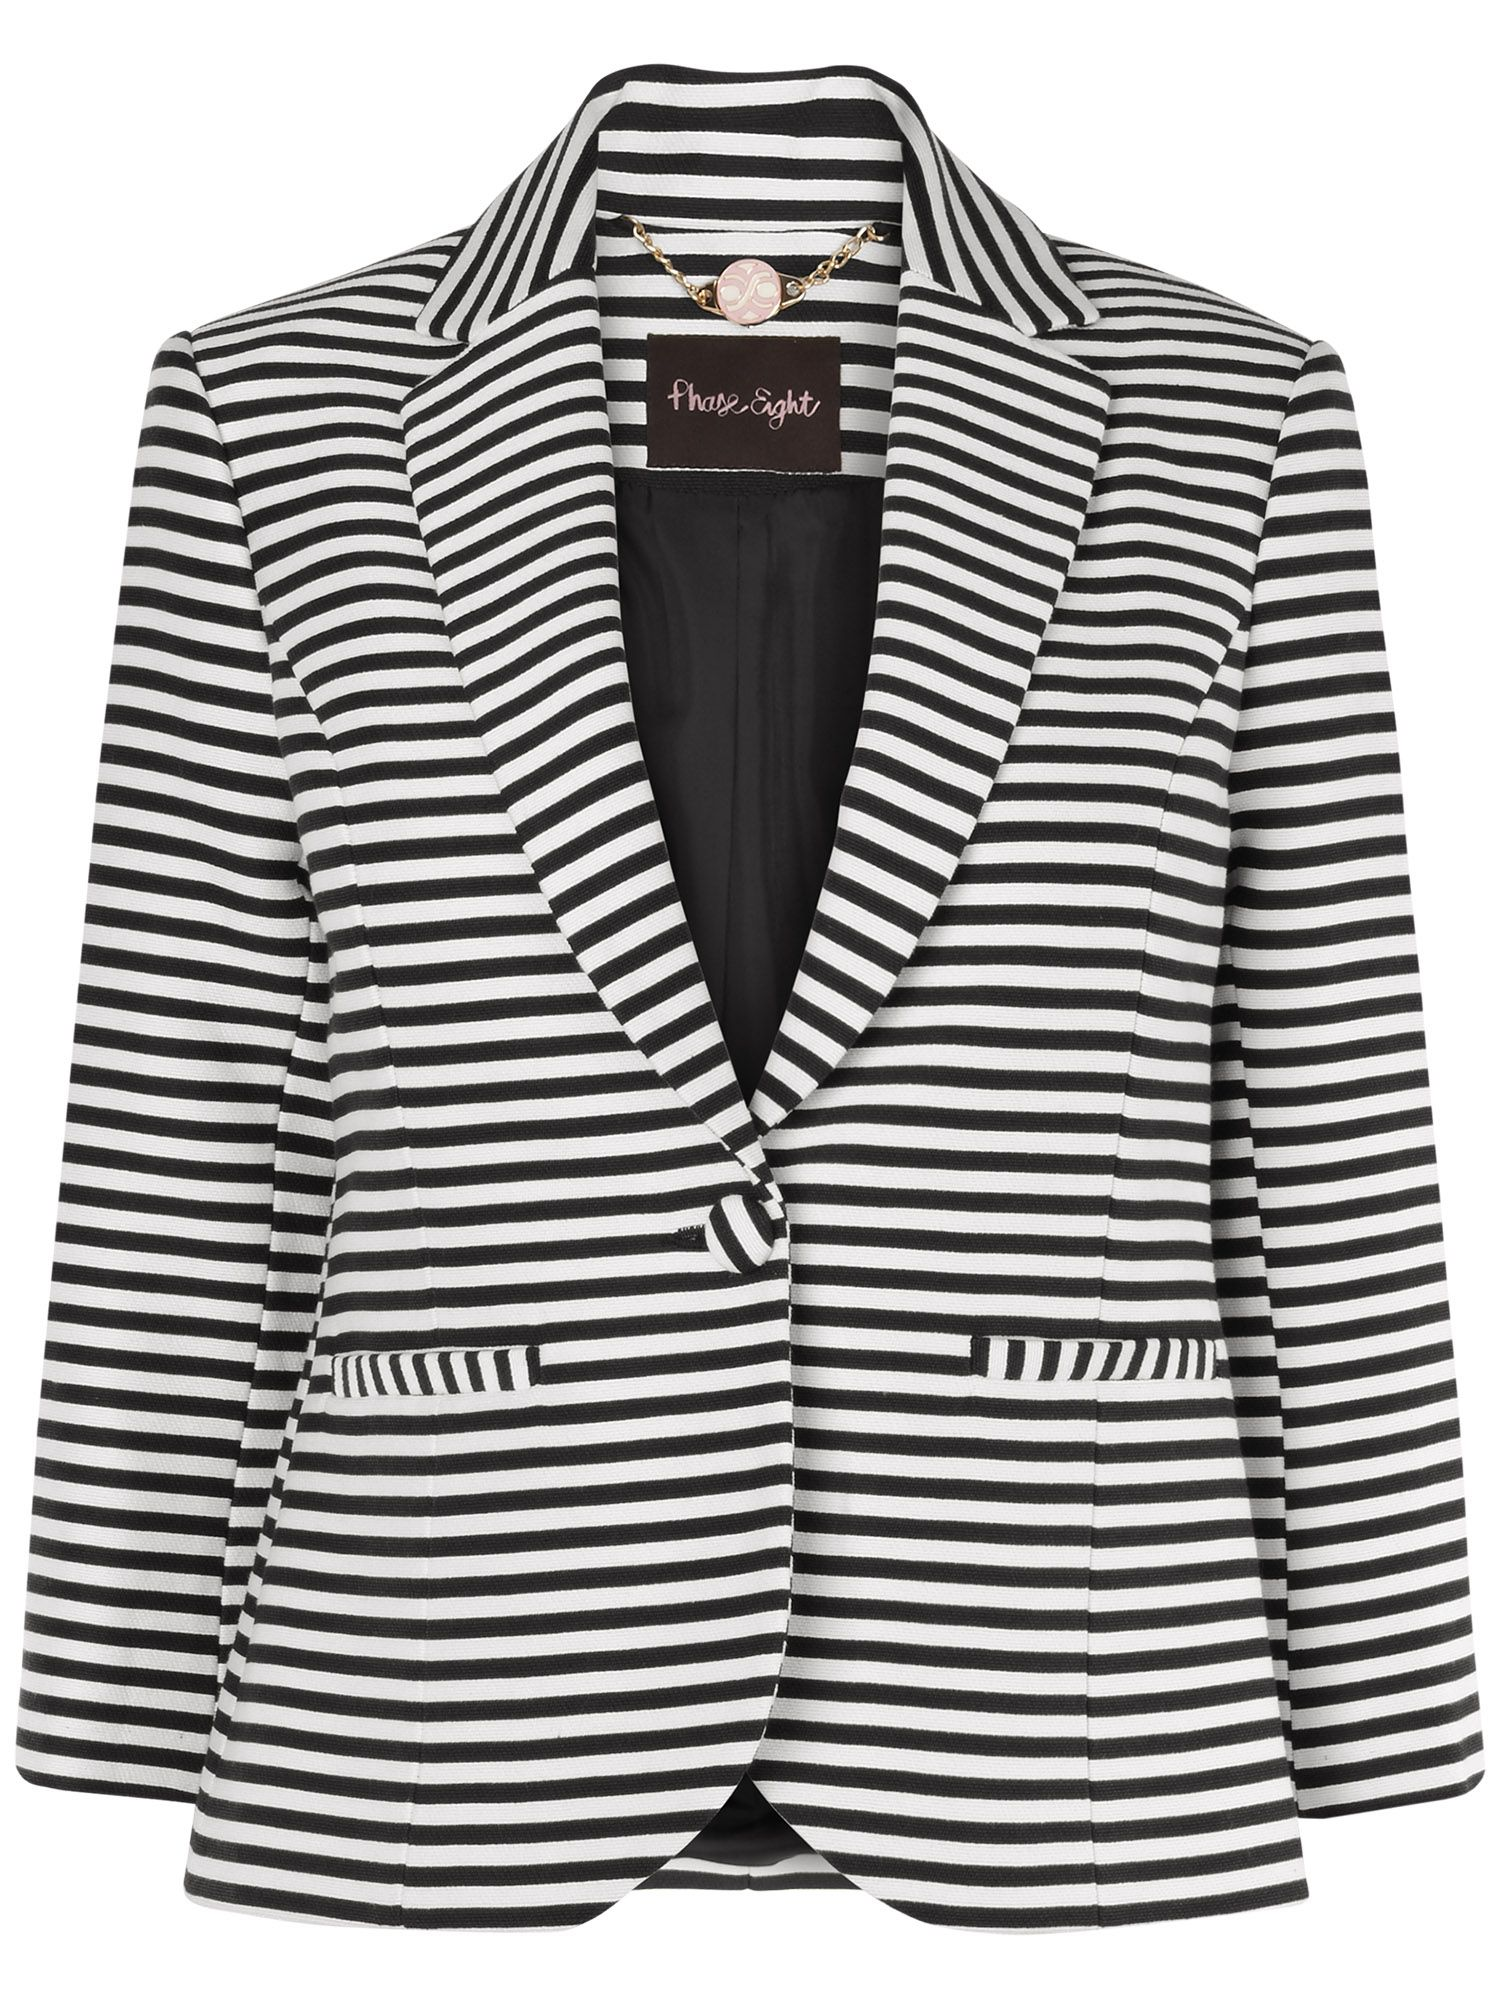 Miranda stripe jacket